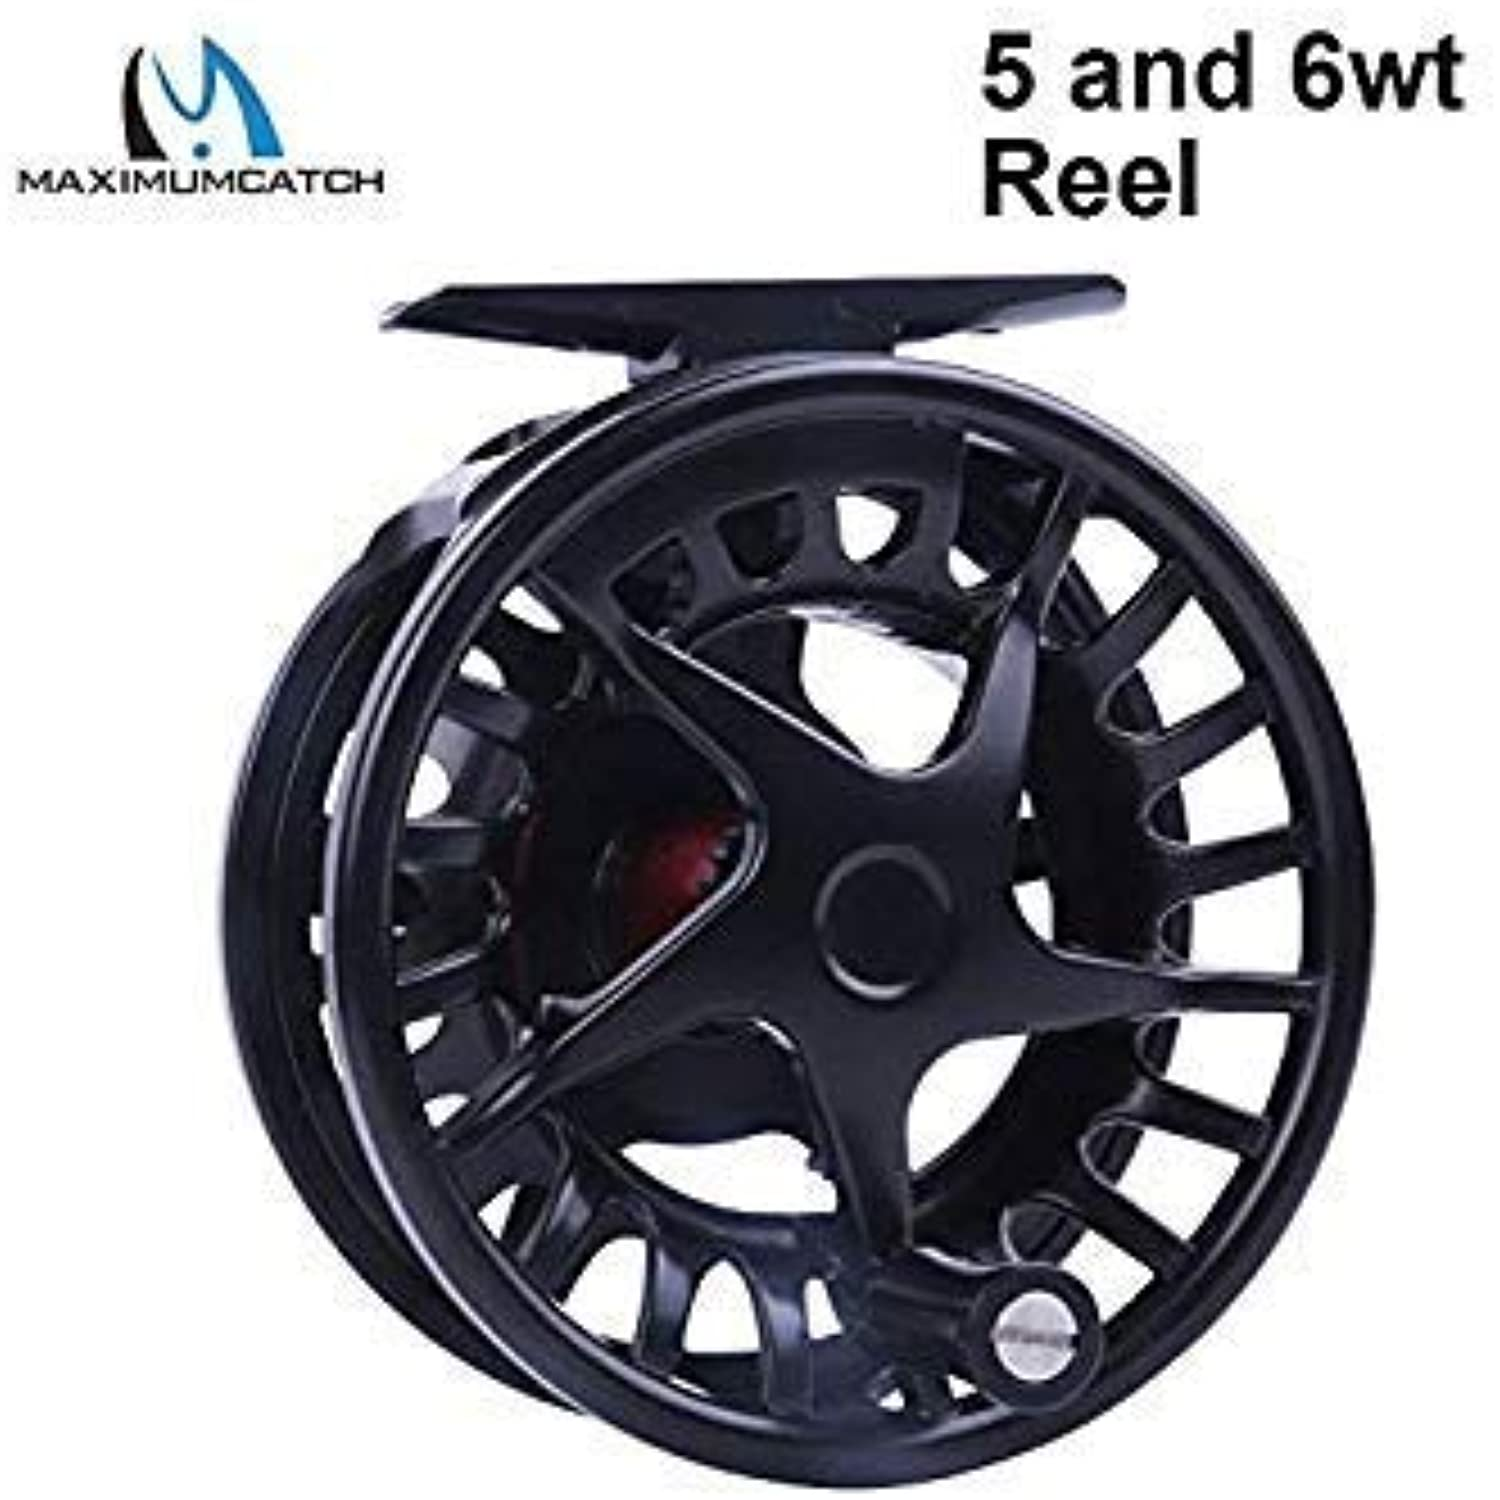 Maximumcatch DX 5 6 7 8WT Aluminum Fly Reel Right and Left-Handed Fly Fishing Reel Black color Fishing Reel color 5 and 6wt Reel